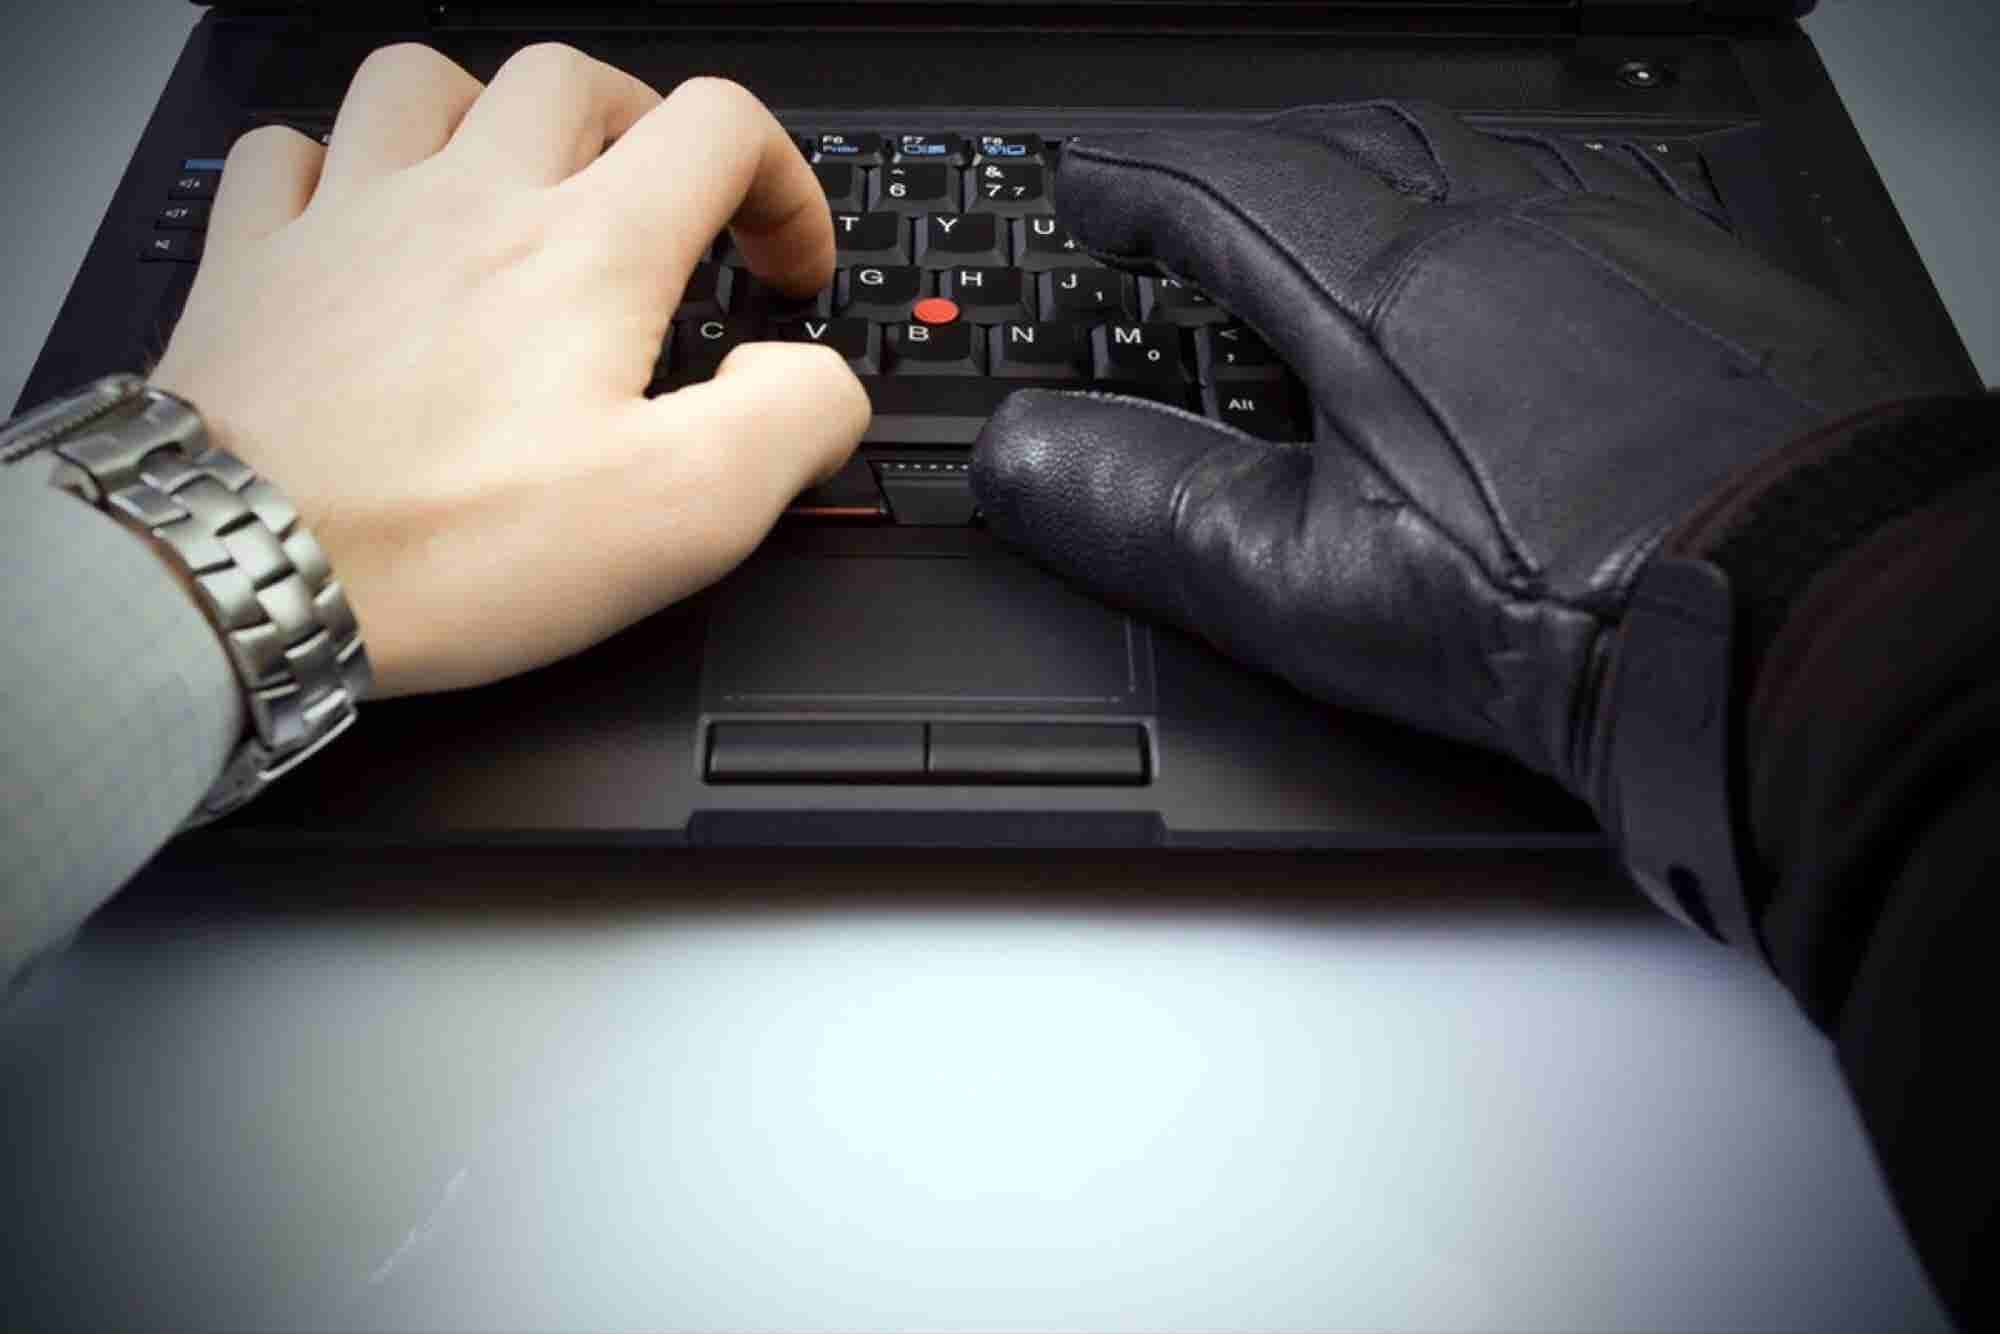 Online Identity Theft: Curbing the Tragedy Beforehand